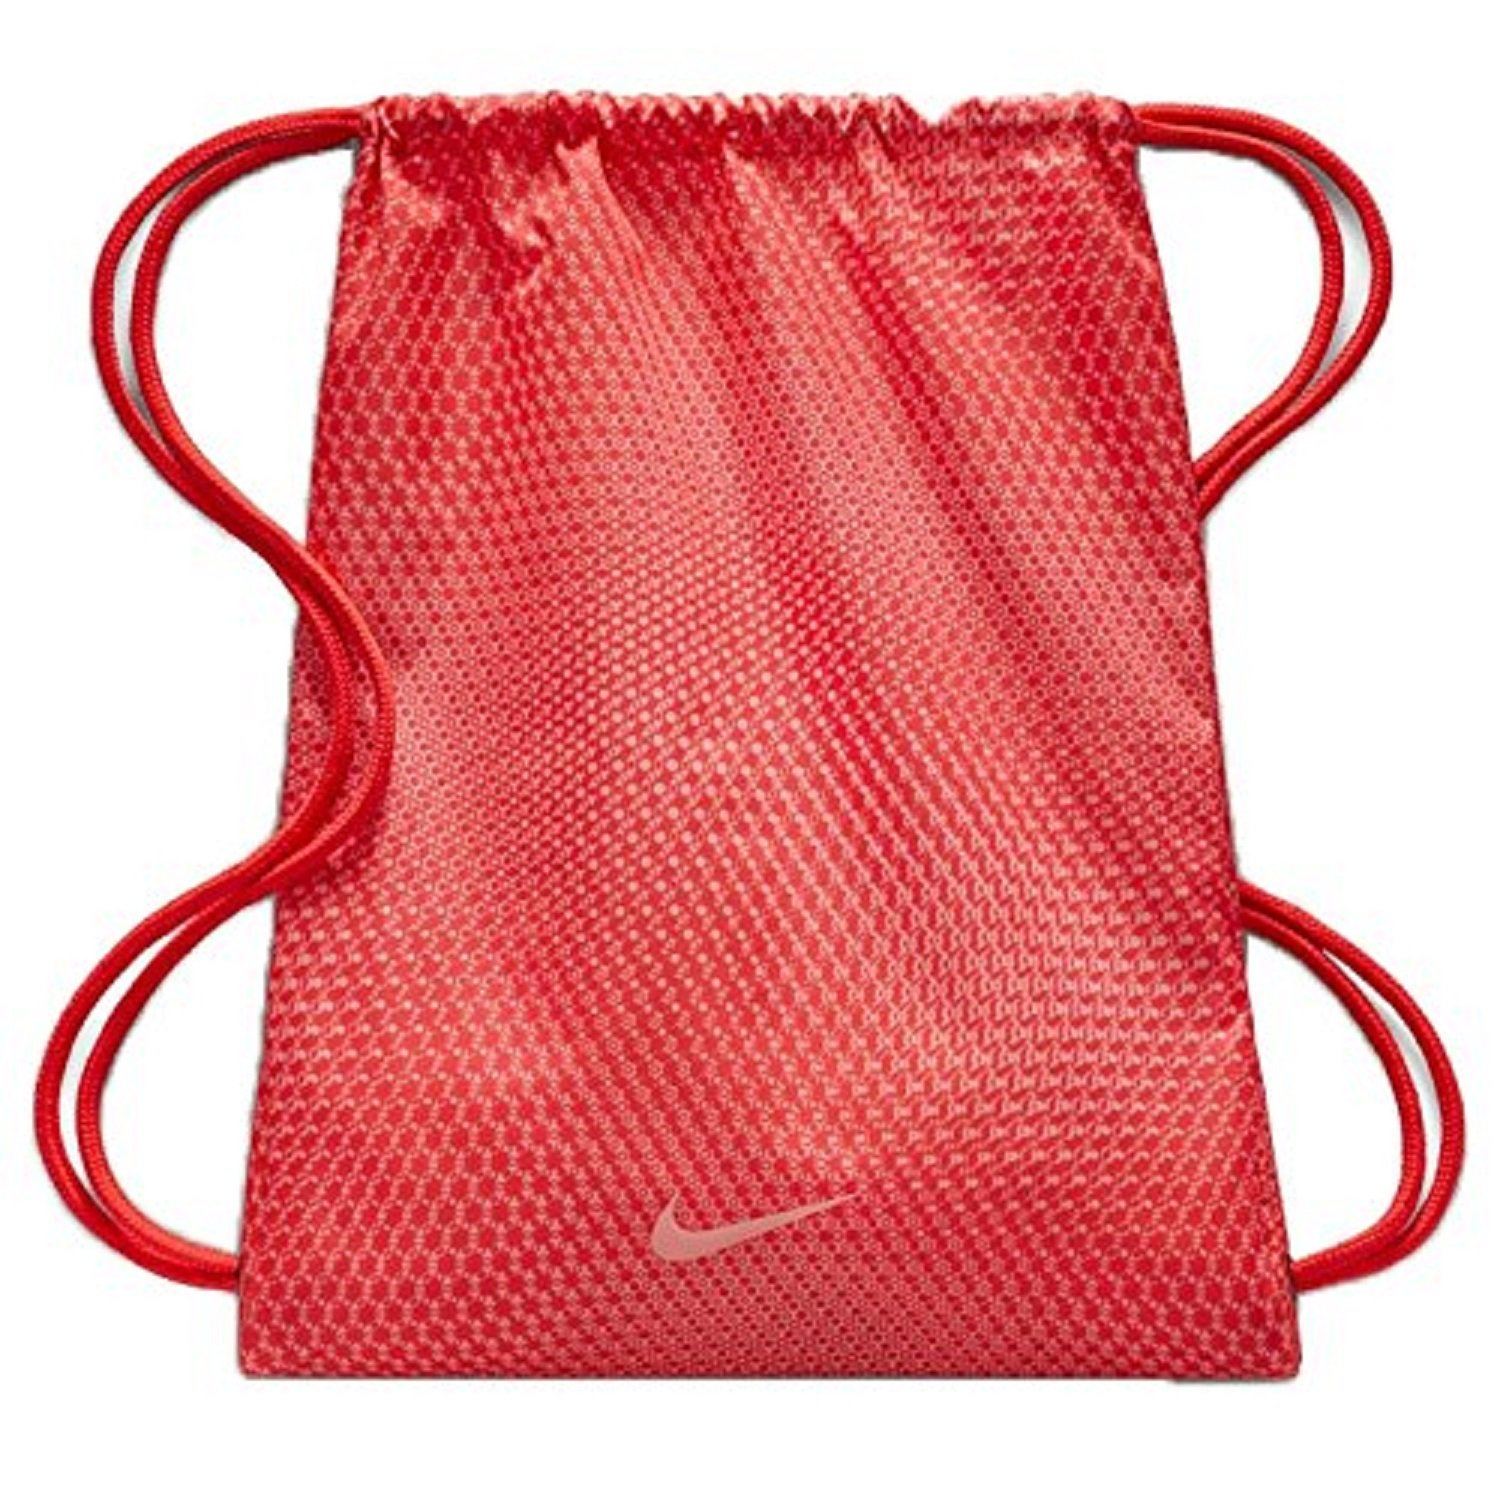 NIKE YA Graphic Gymsack (One Size, Red/Blue)